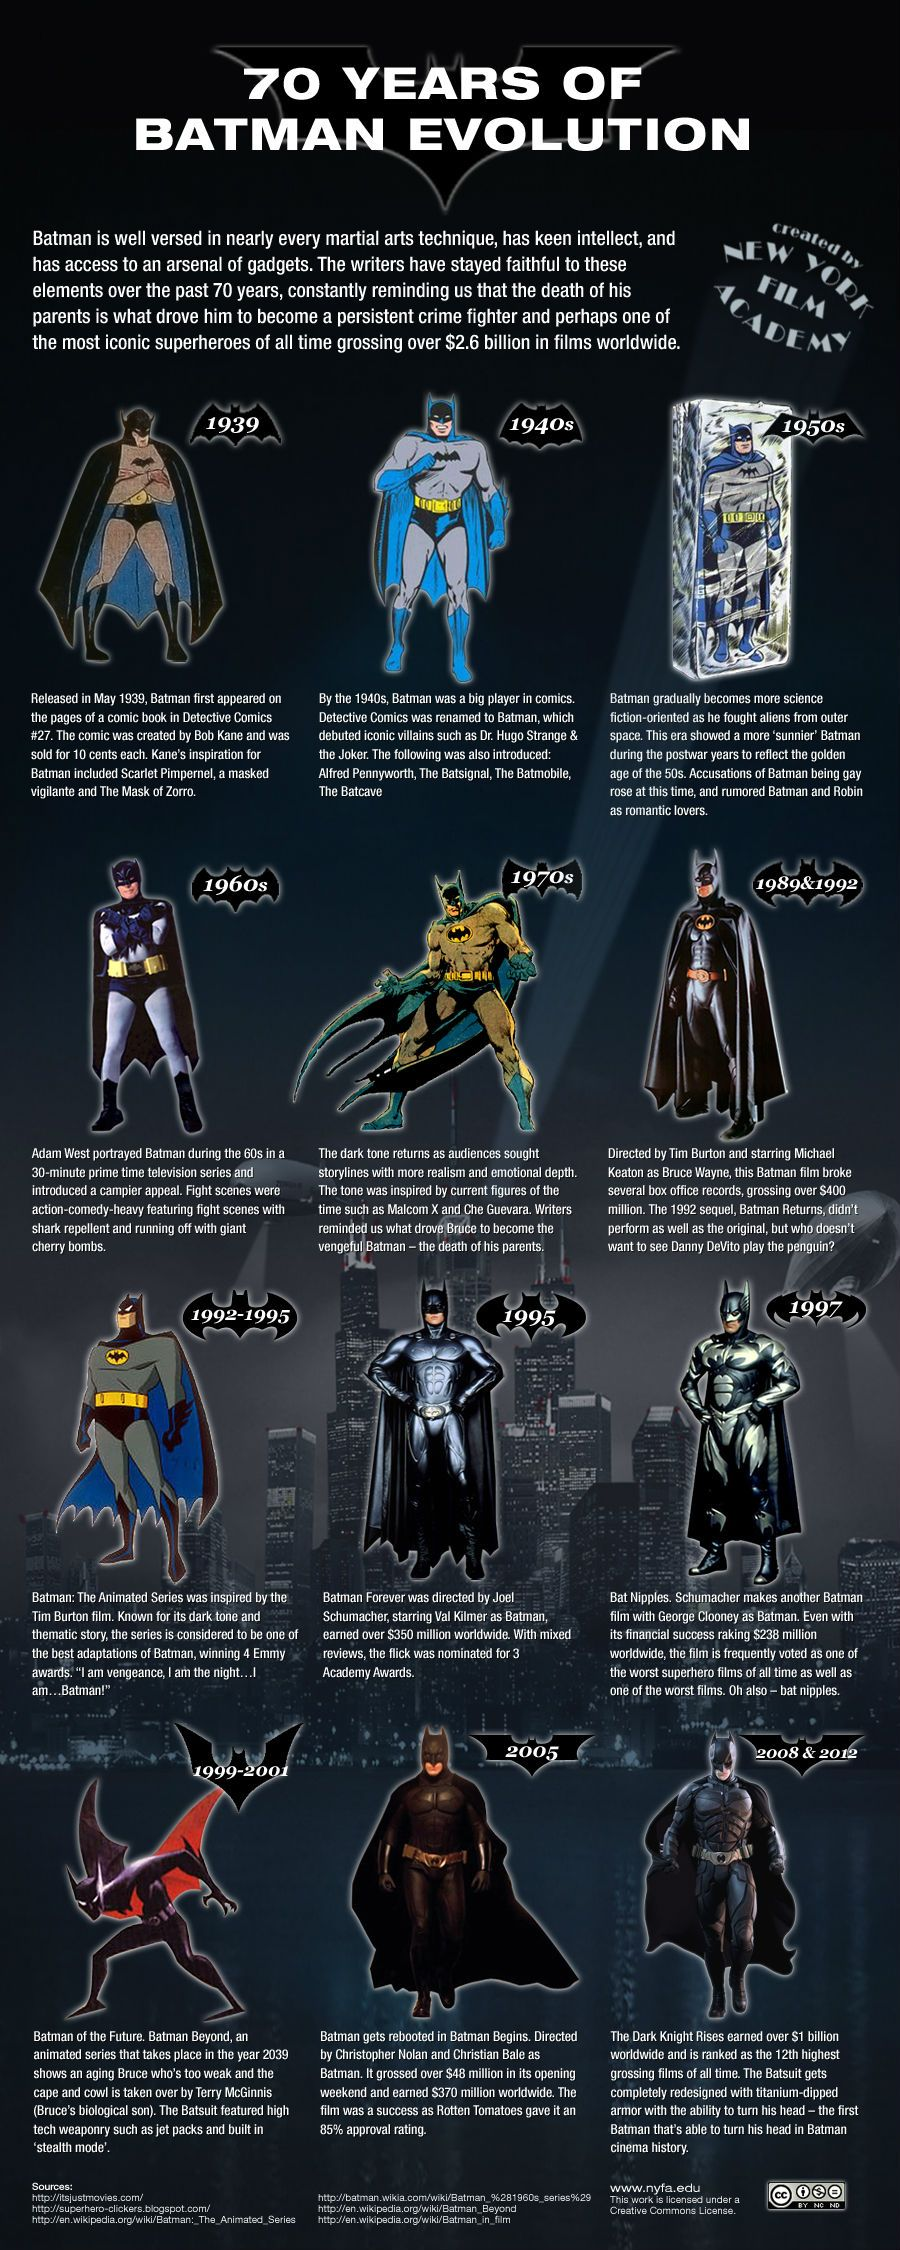 Batman Over Time: The Superhero's Evolution From 1939 to 2012